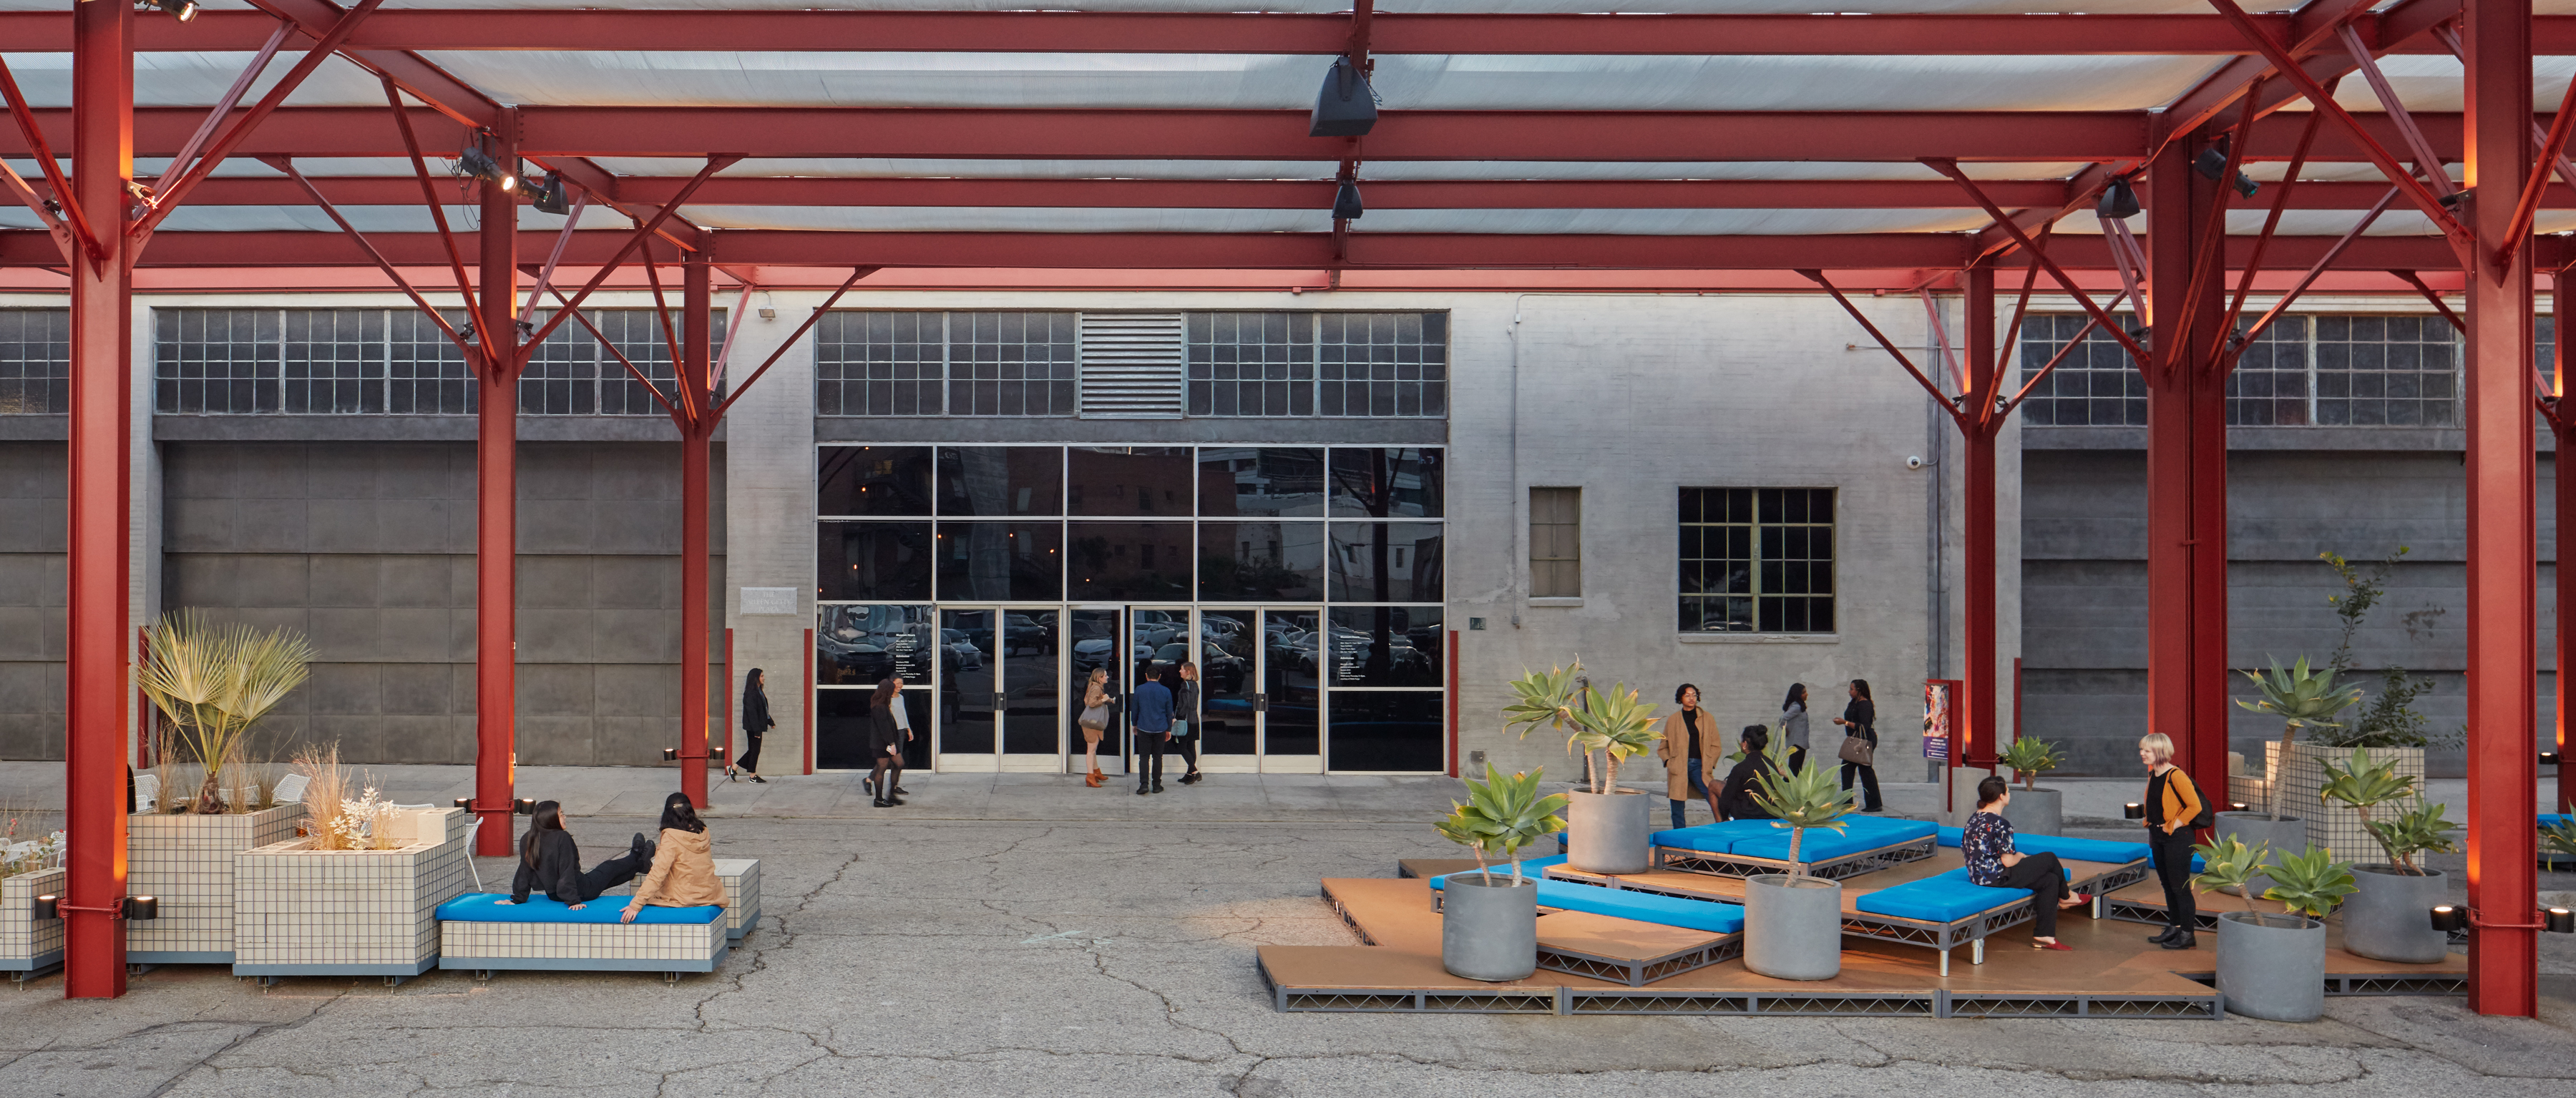 The Geffen Contemporary at MOCA, photo by Elon Schoenholz